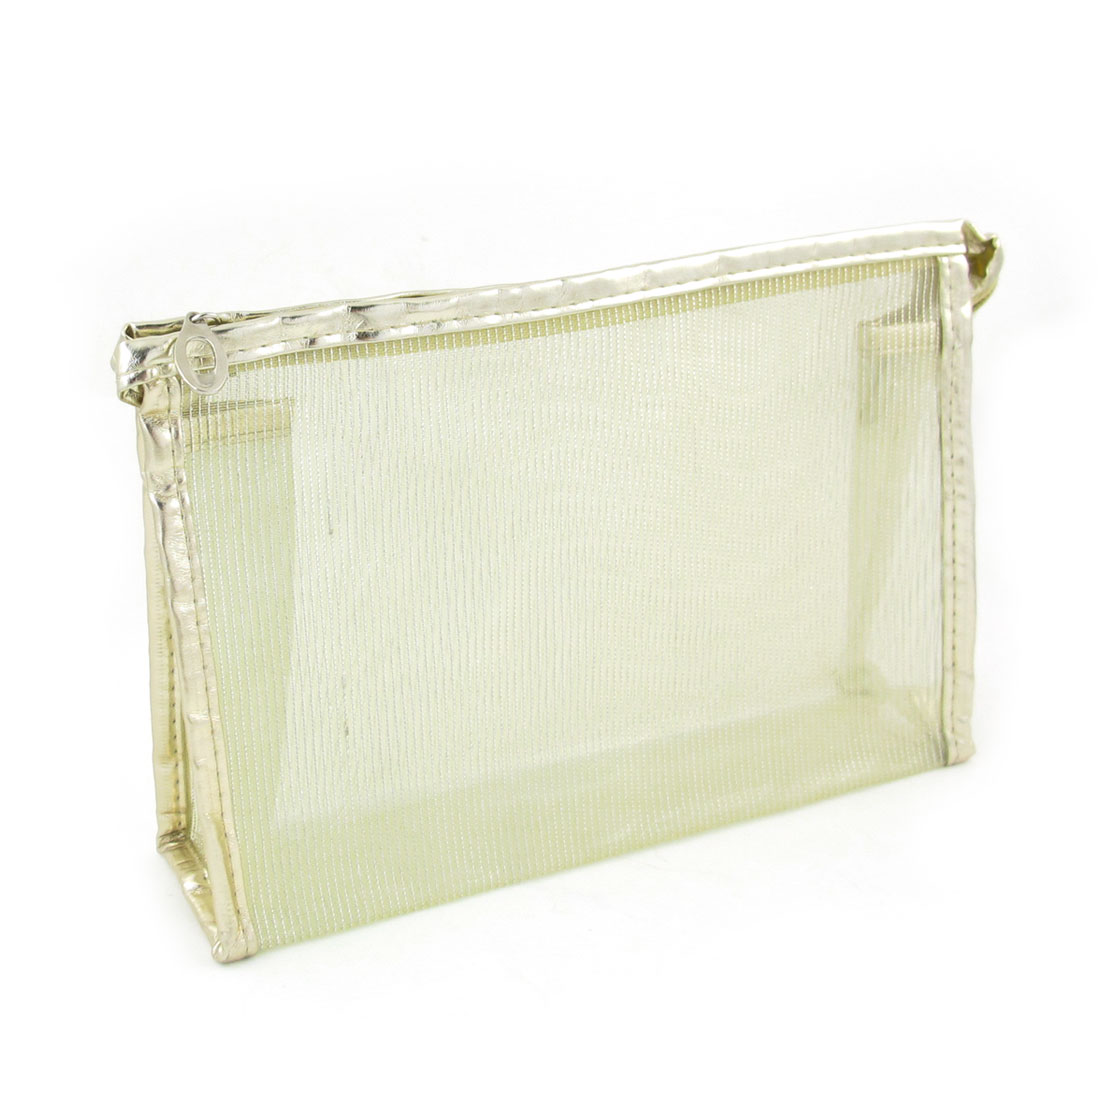 Beige Mesh Waterproof Cosmetic Organizer Handle Makeup Bag Cases